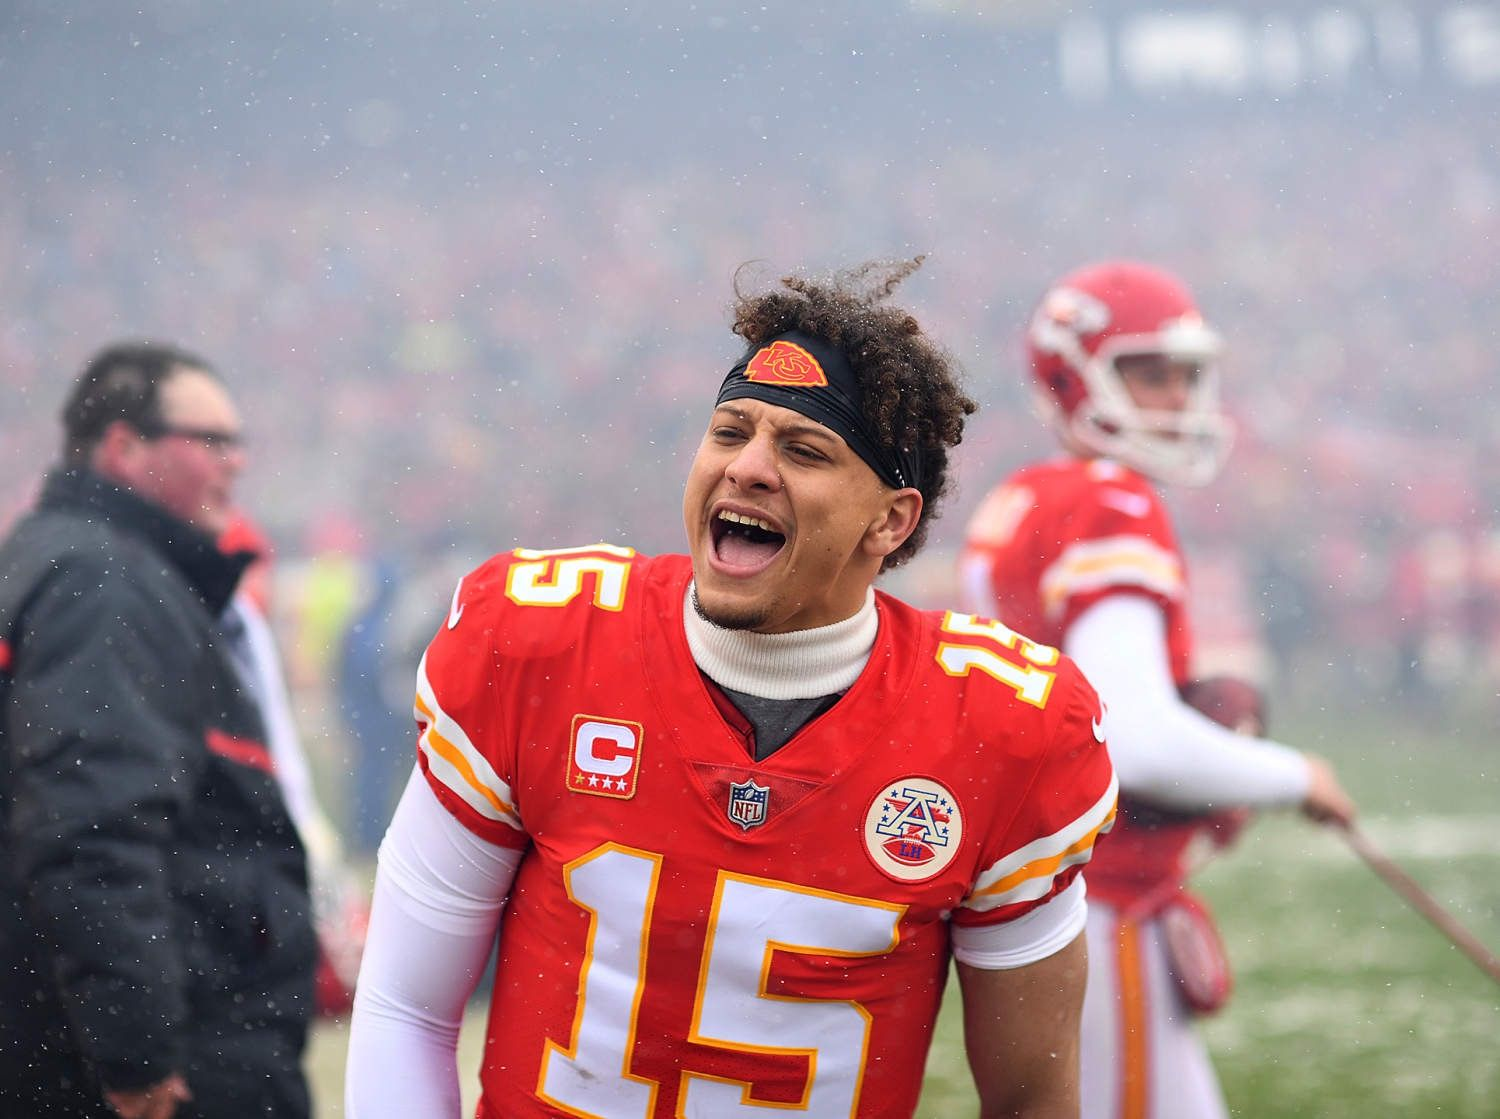 Pin by Courtney4793 on Patrick Mahomes Kc chiefs